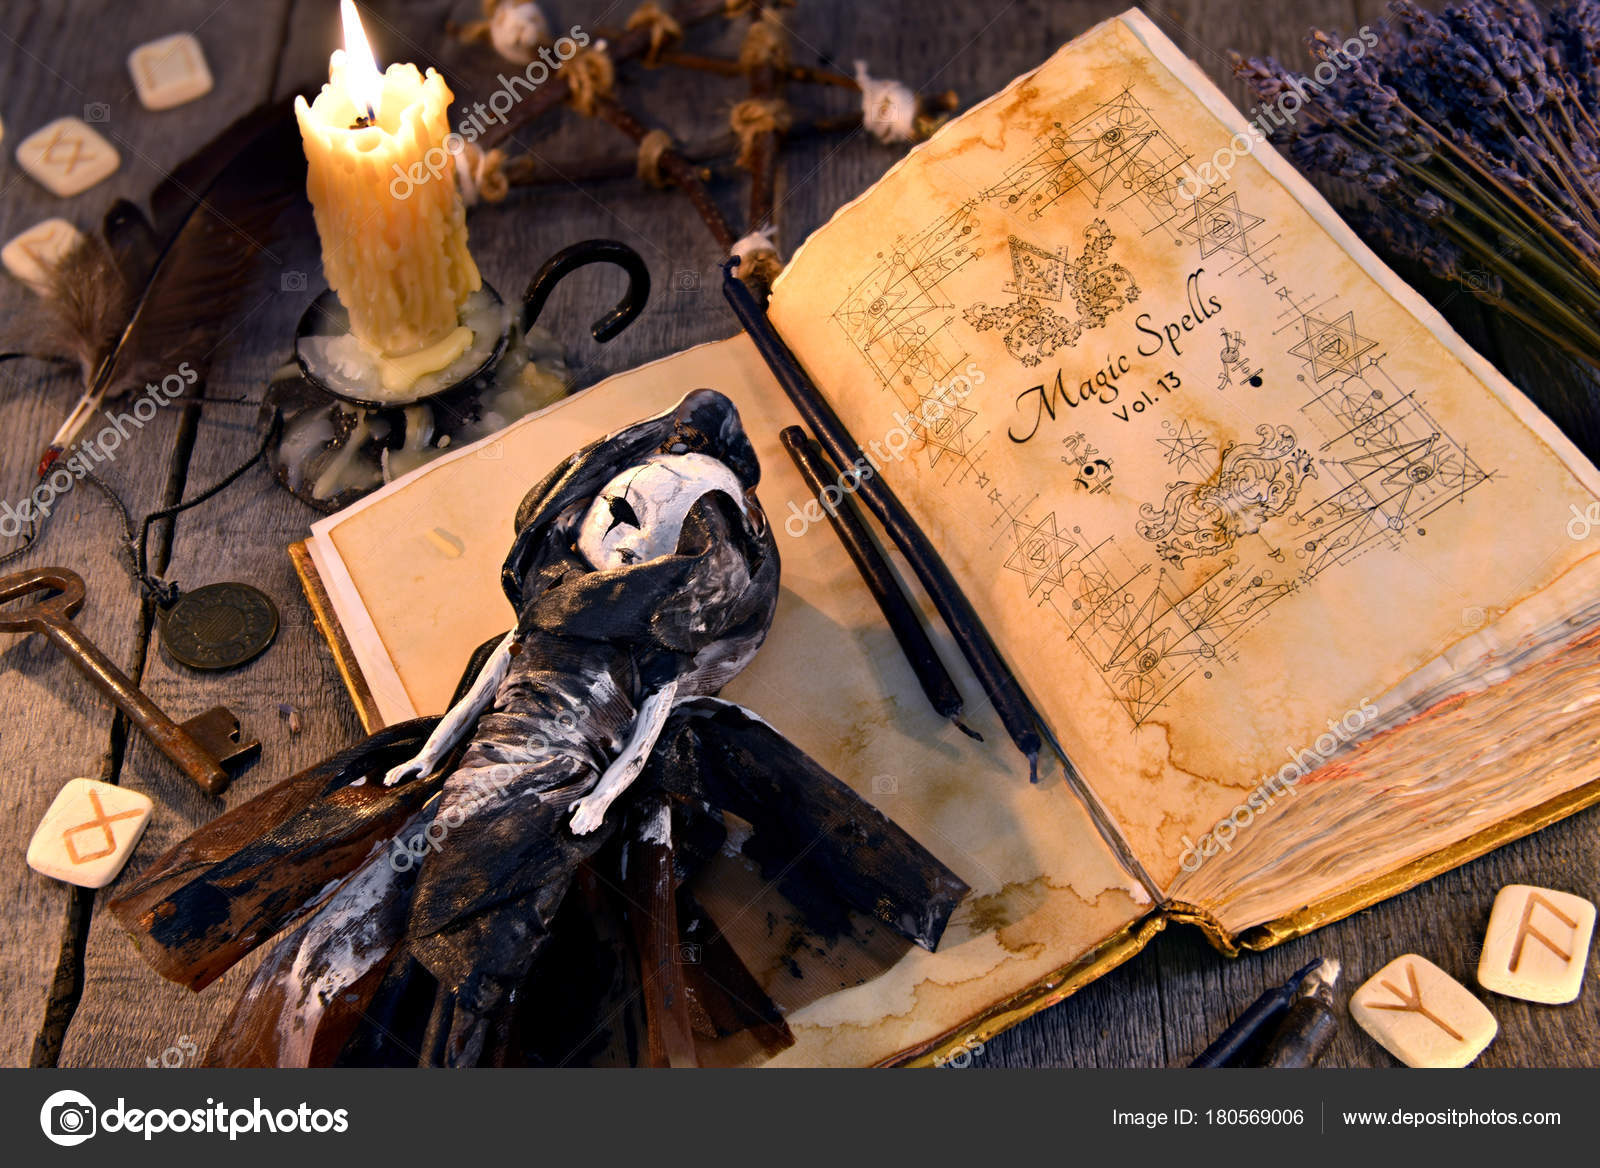 Old Book Black Magic Spells Scary Doll Rune Burning Candle